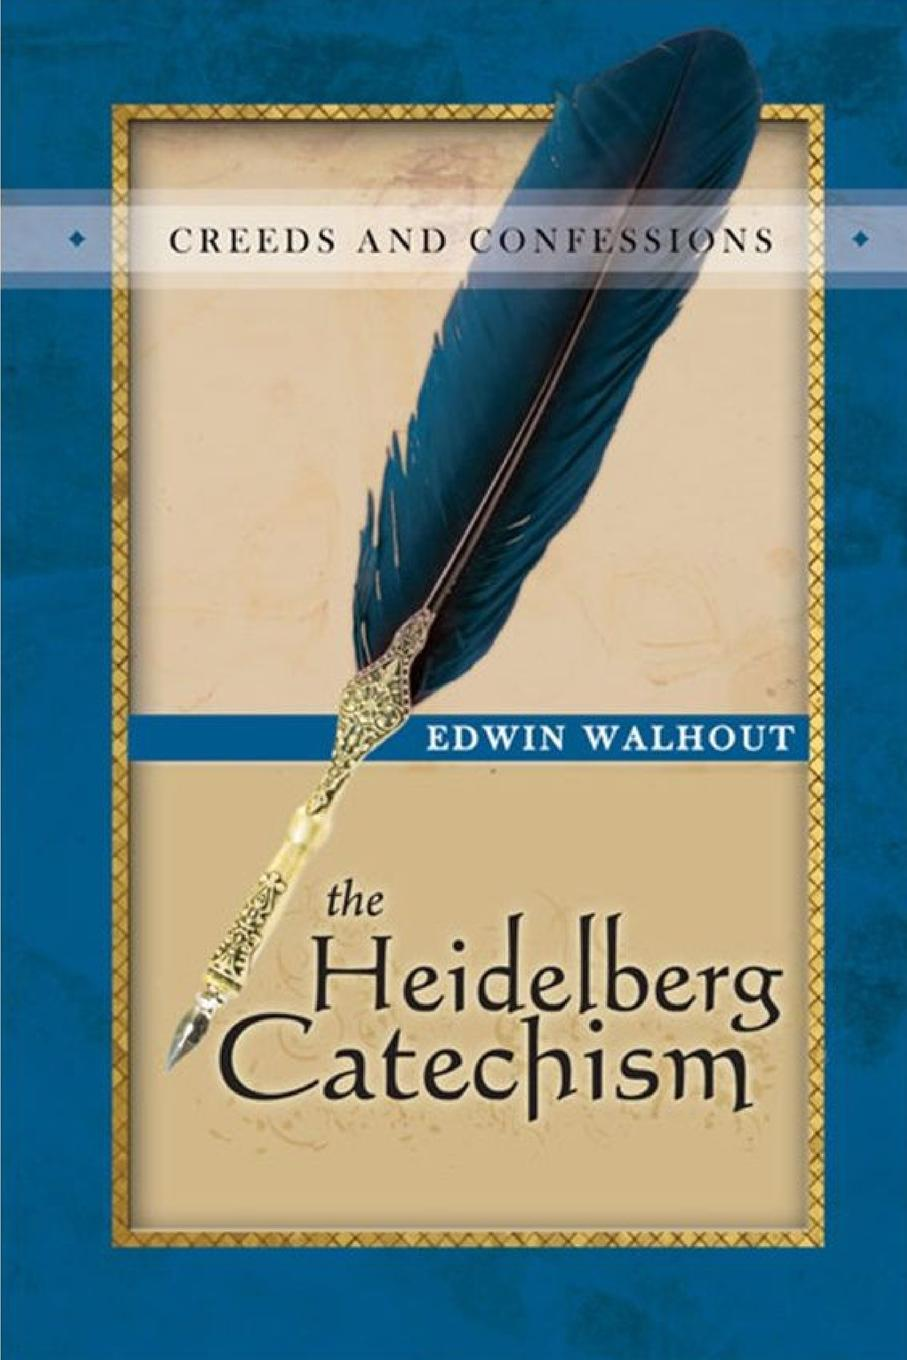 Edwin Walhout THE HEIDELBERG CATECHISM. A Theological and Pastoral Critique 1 piece heidelberg geared motor 71 186 5121 heidelberg printing machinery parts